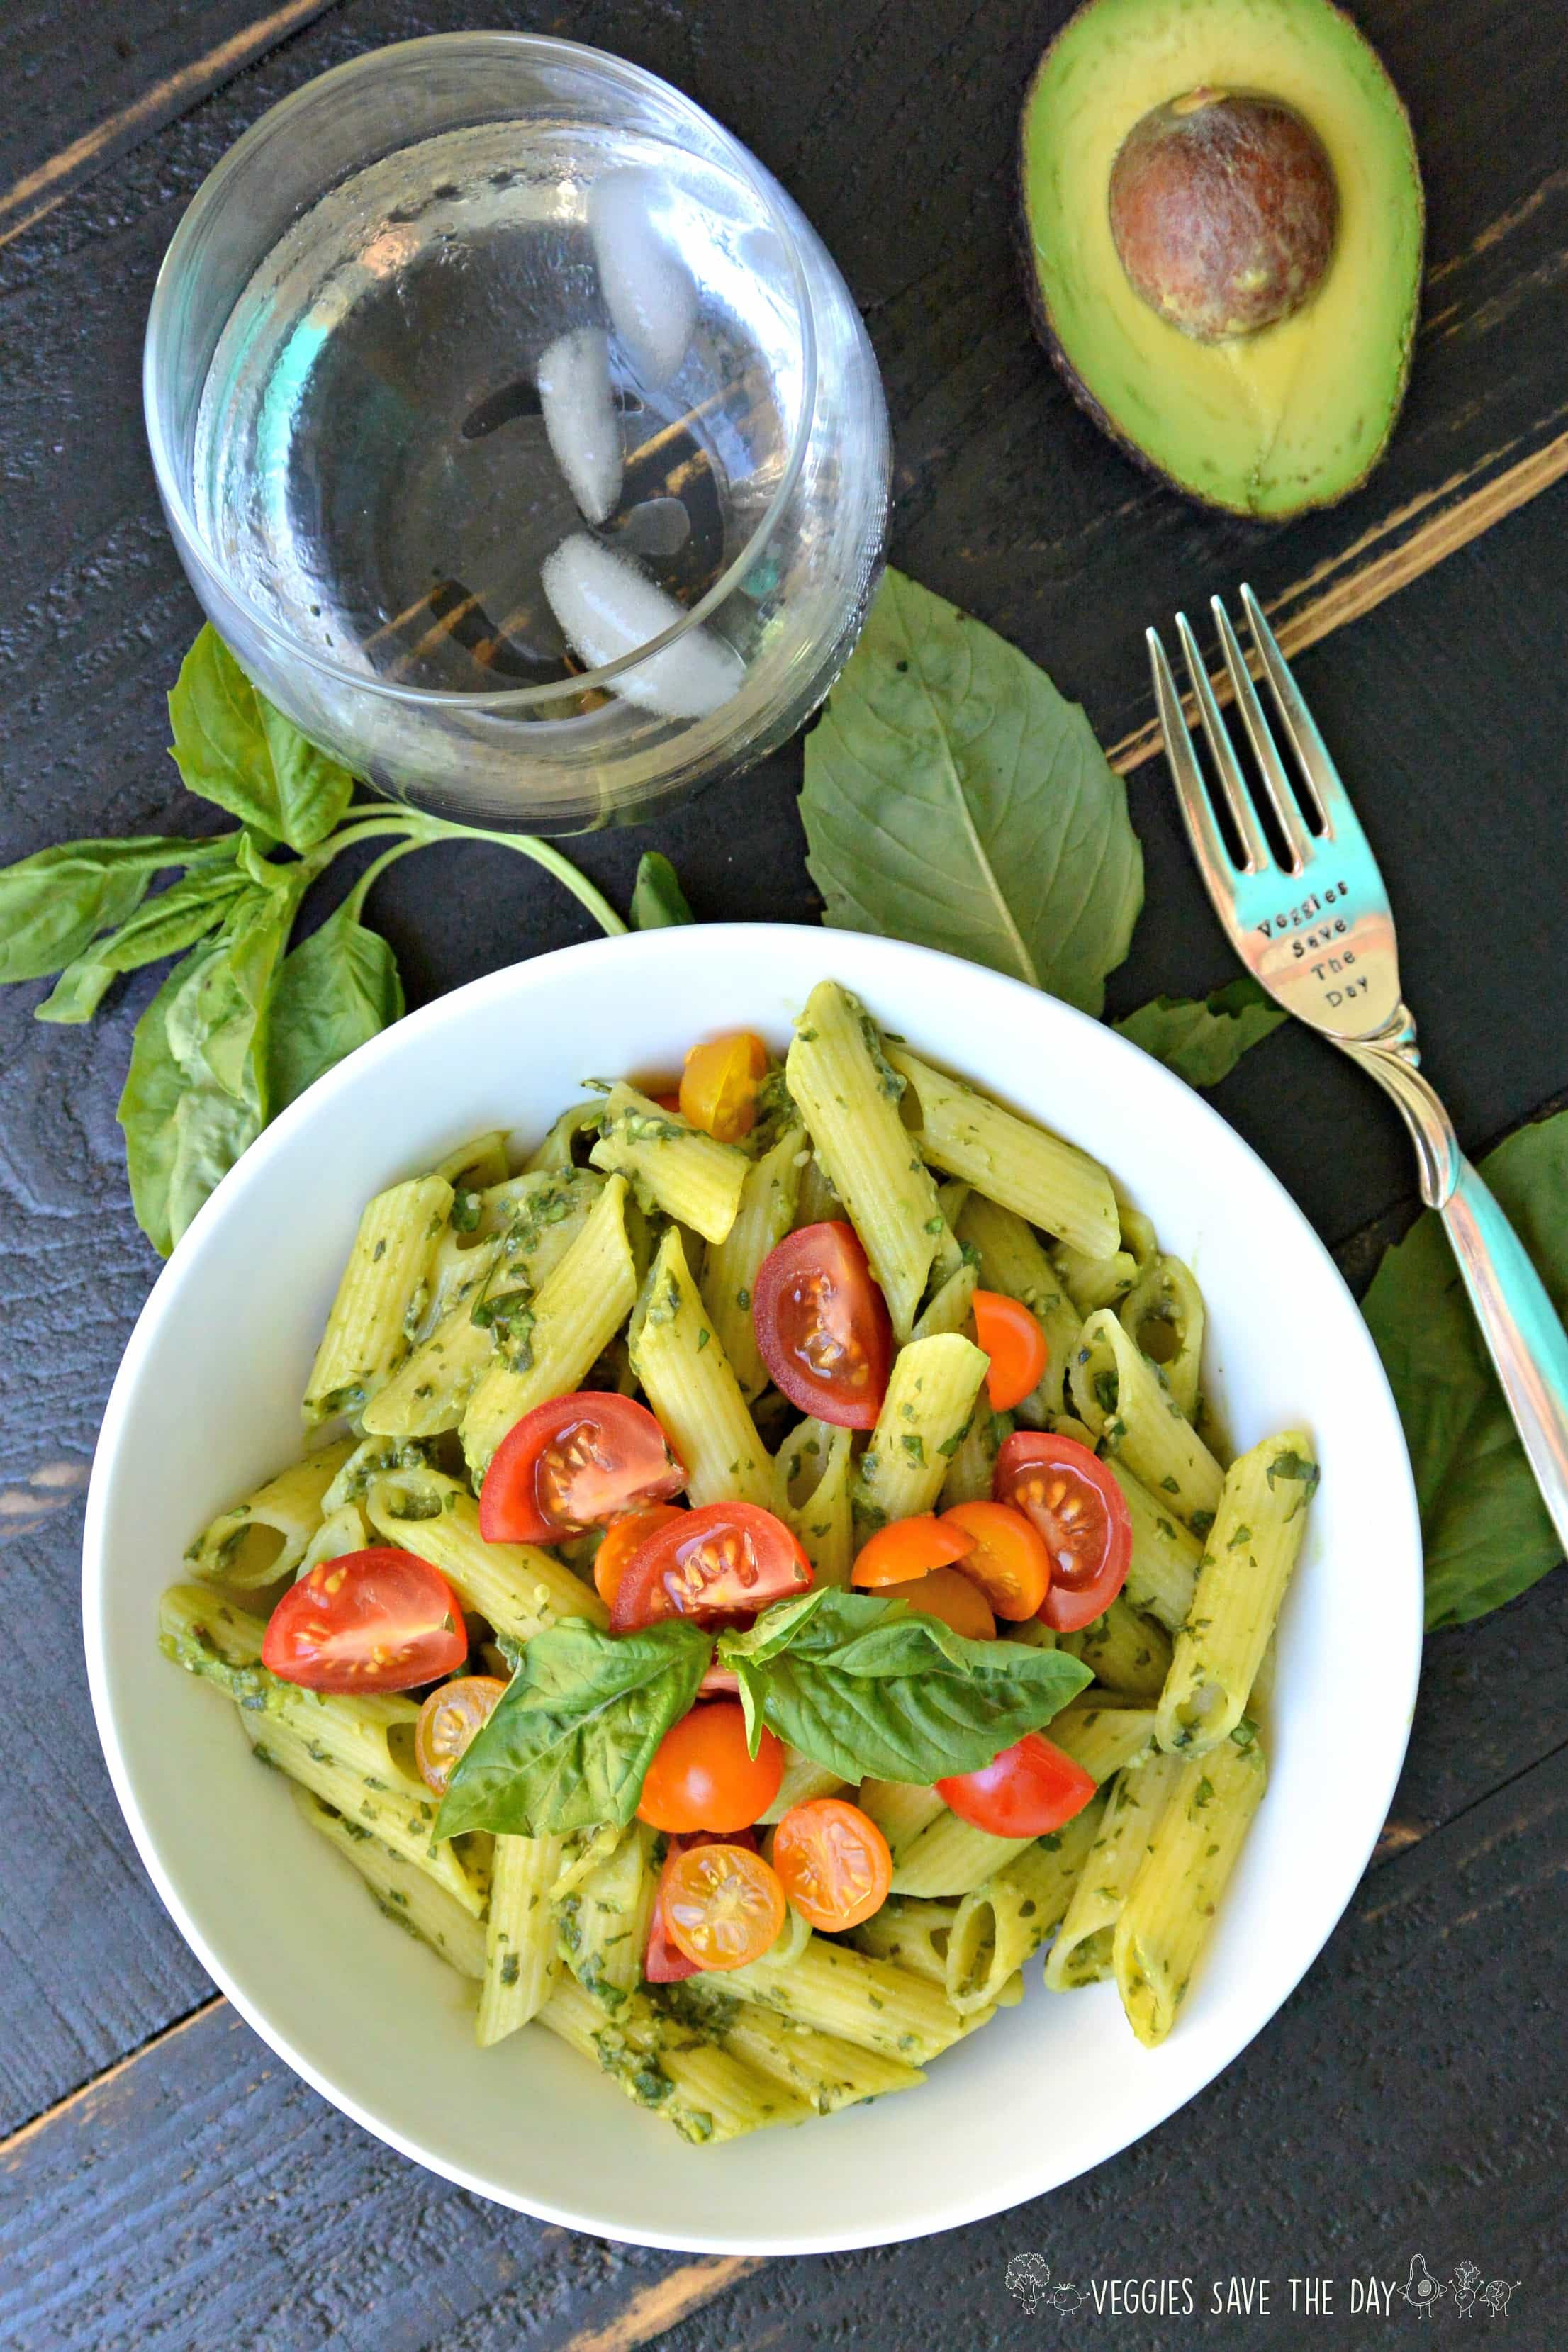 Gluten-Free Vegan Recipes- avocado basil peso pasta